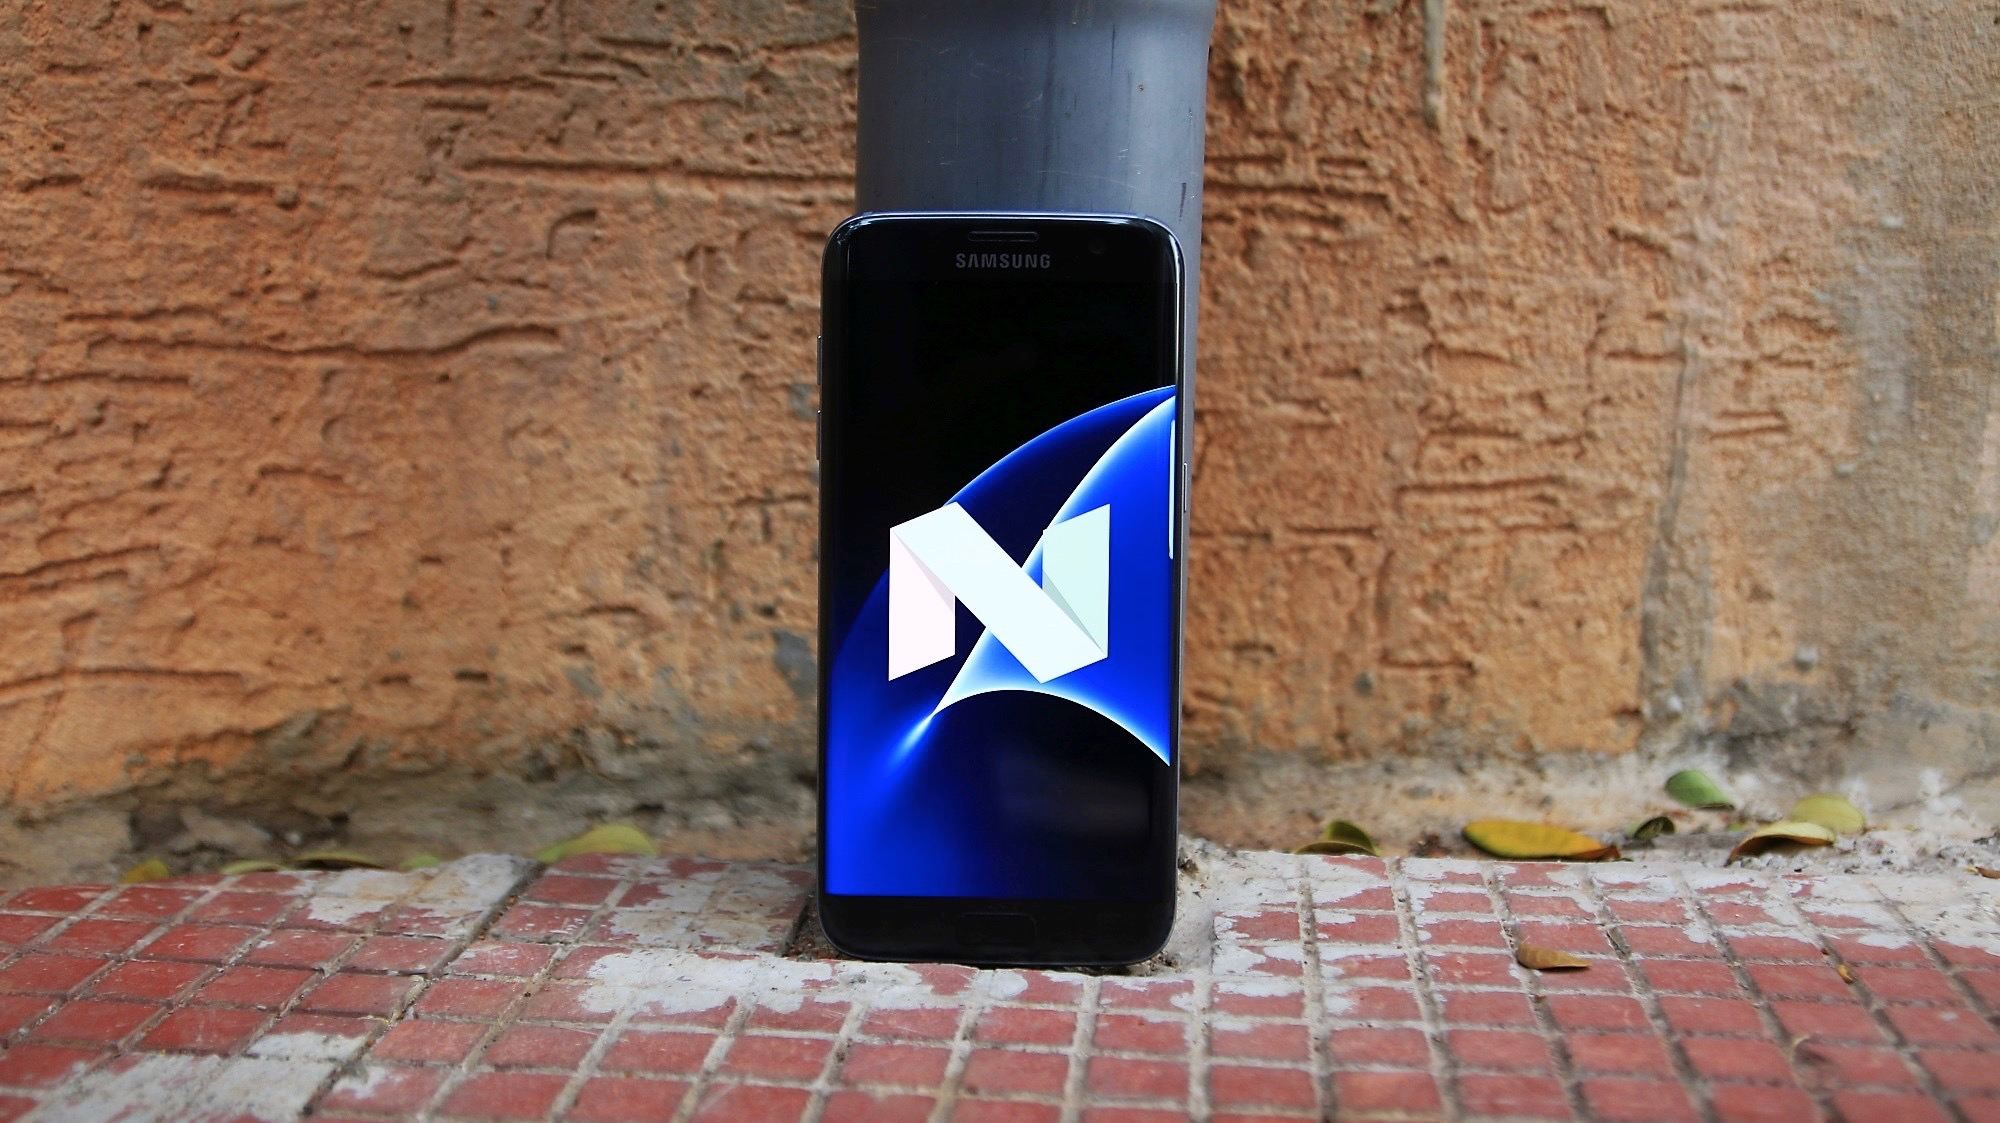 How to Manually Update Galaxy S7 to Android 7 Nougat Official Update